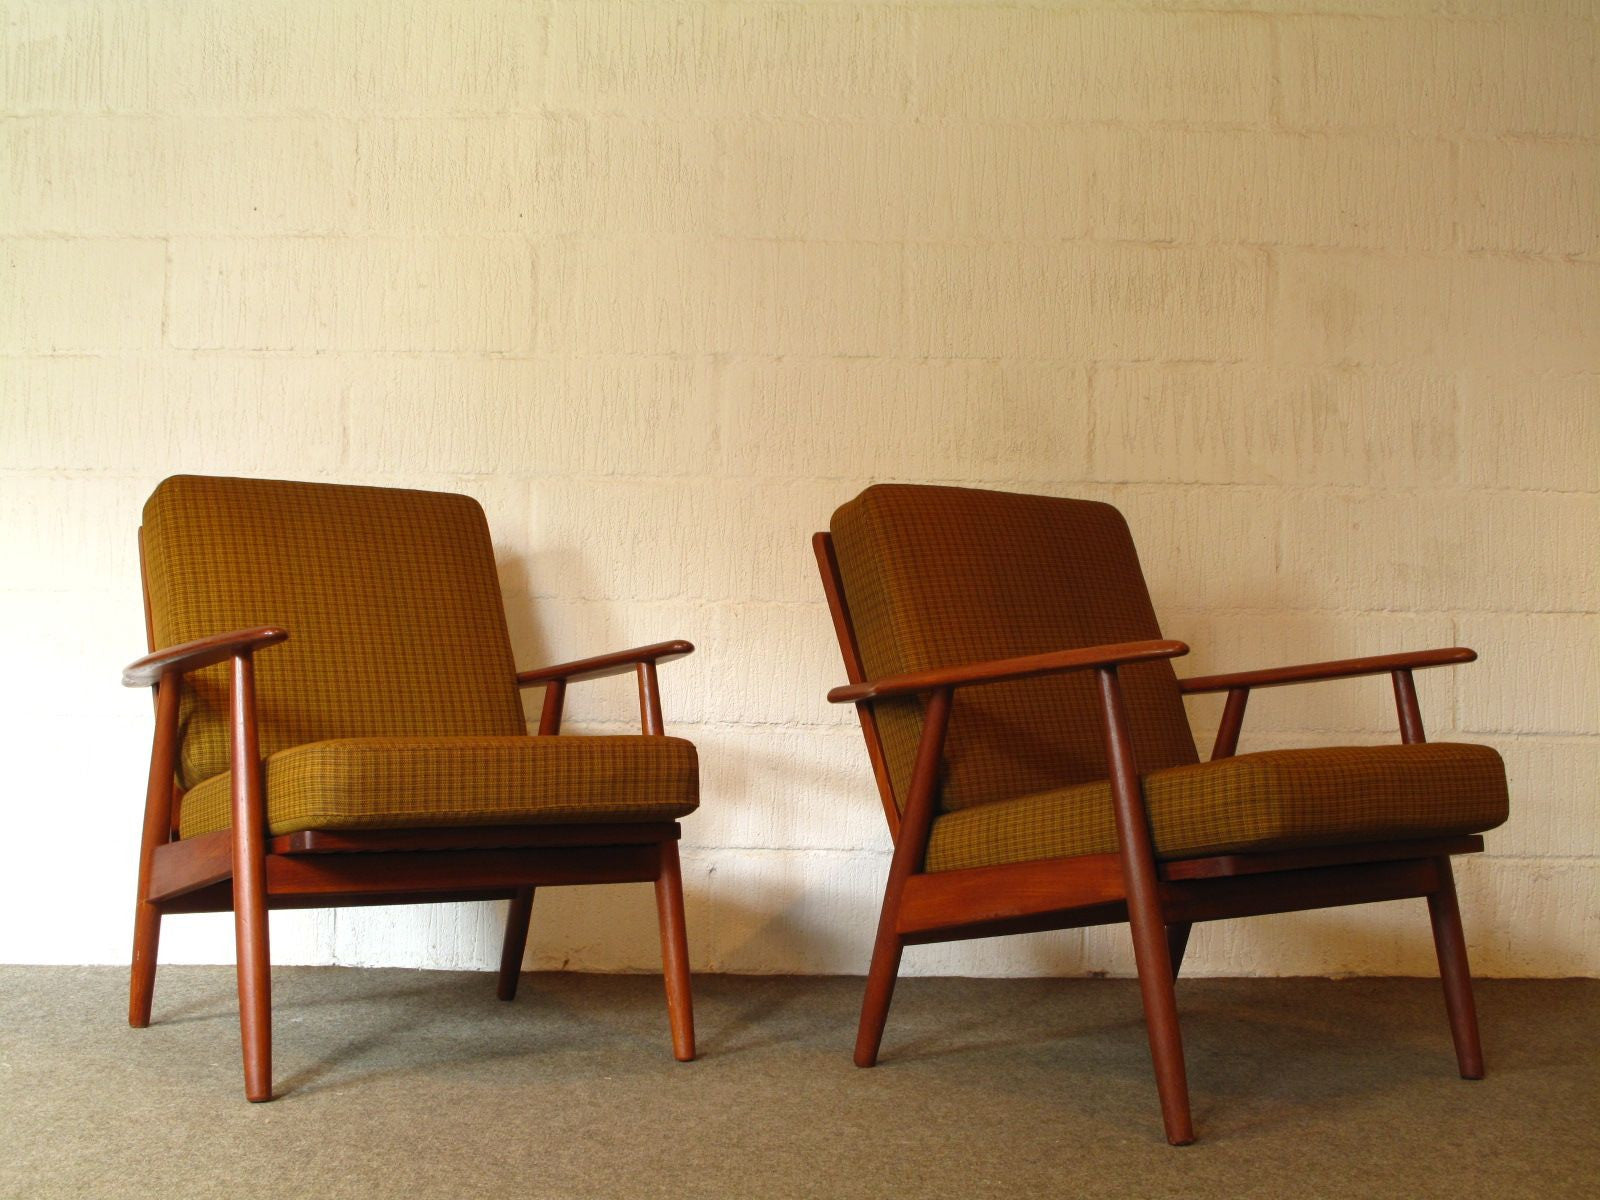 Pair of teak loungers with sprung cushions